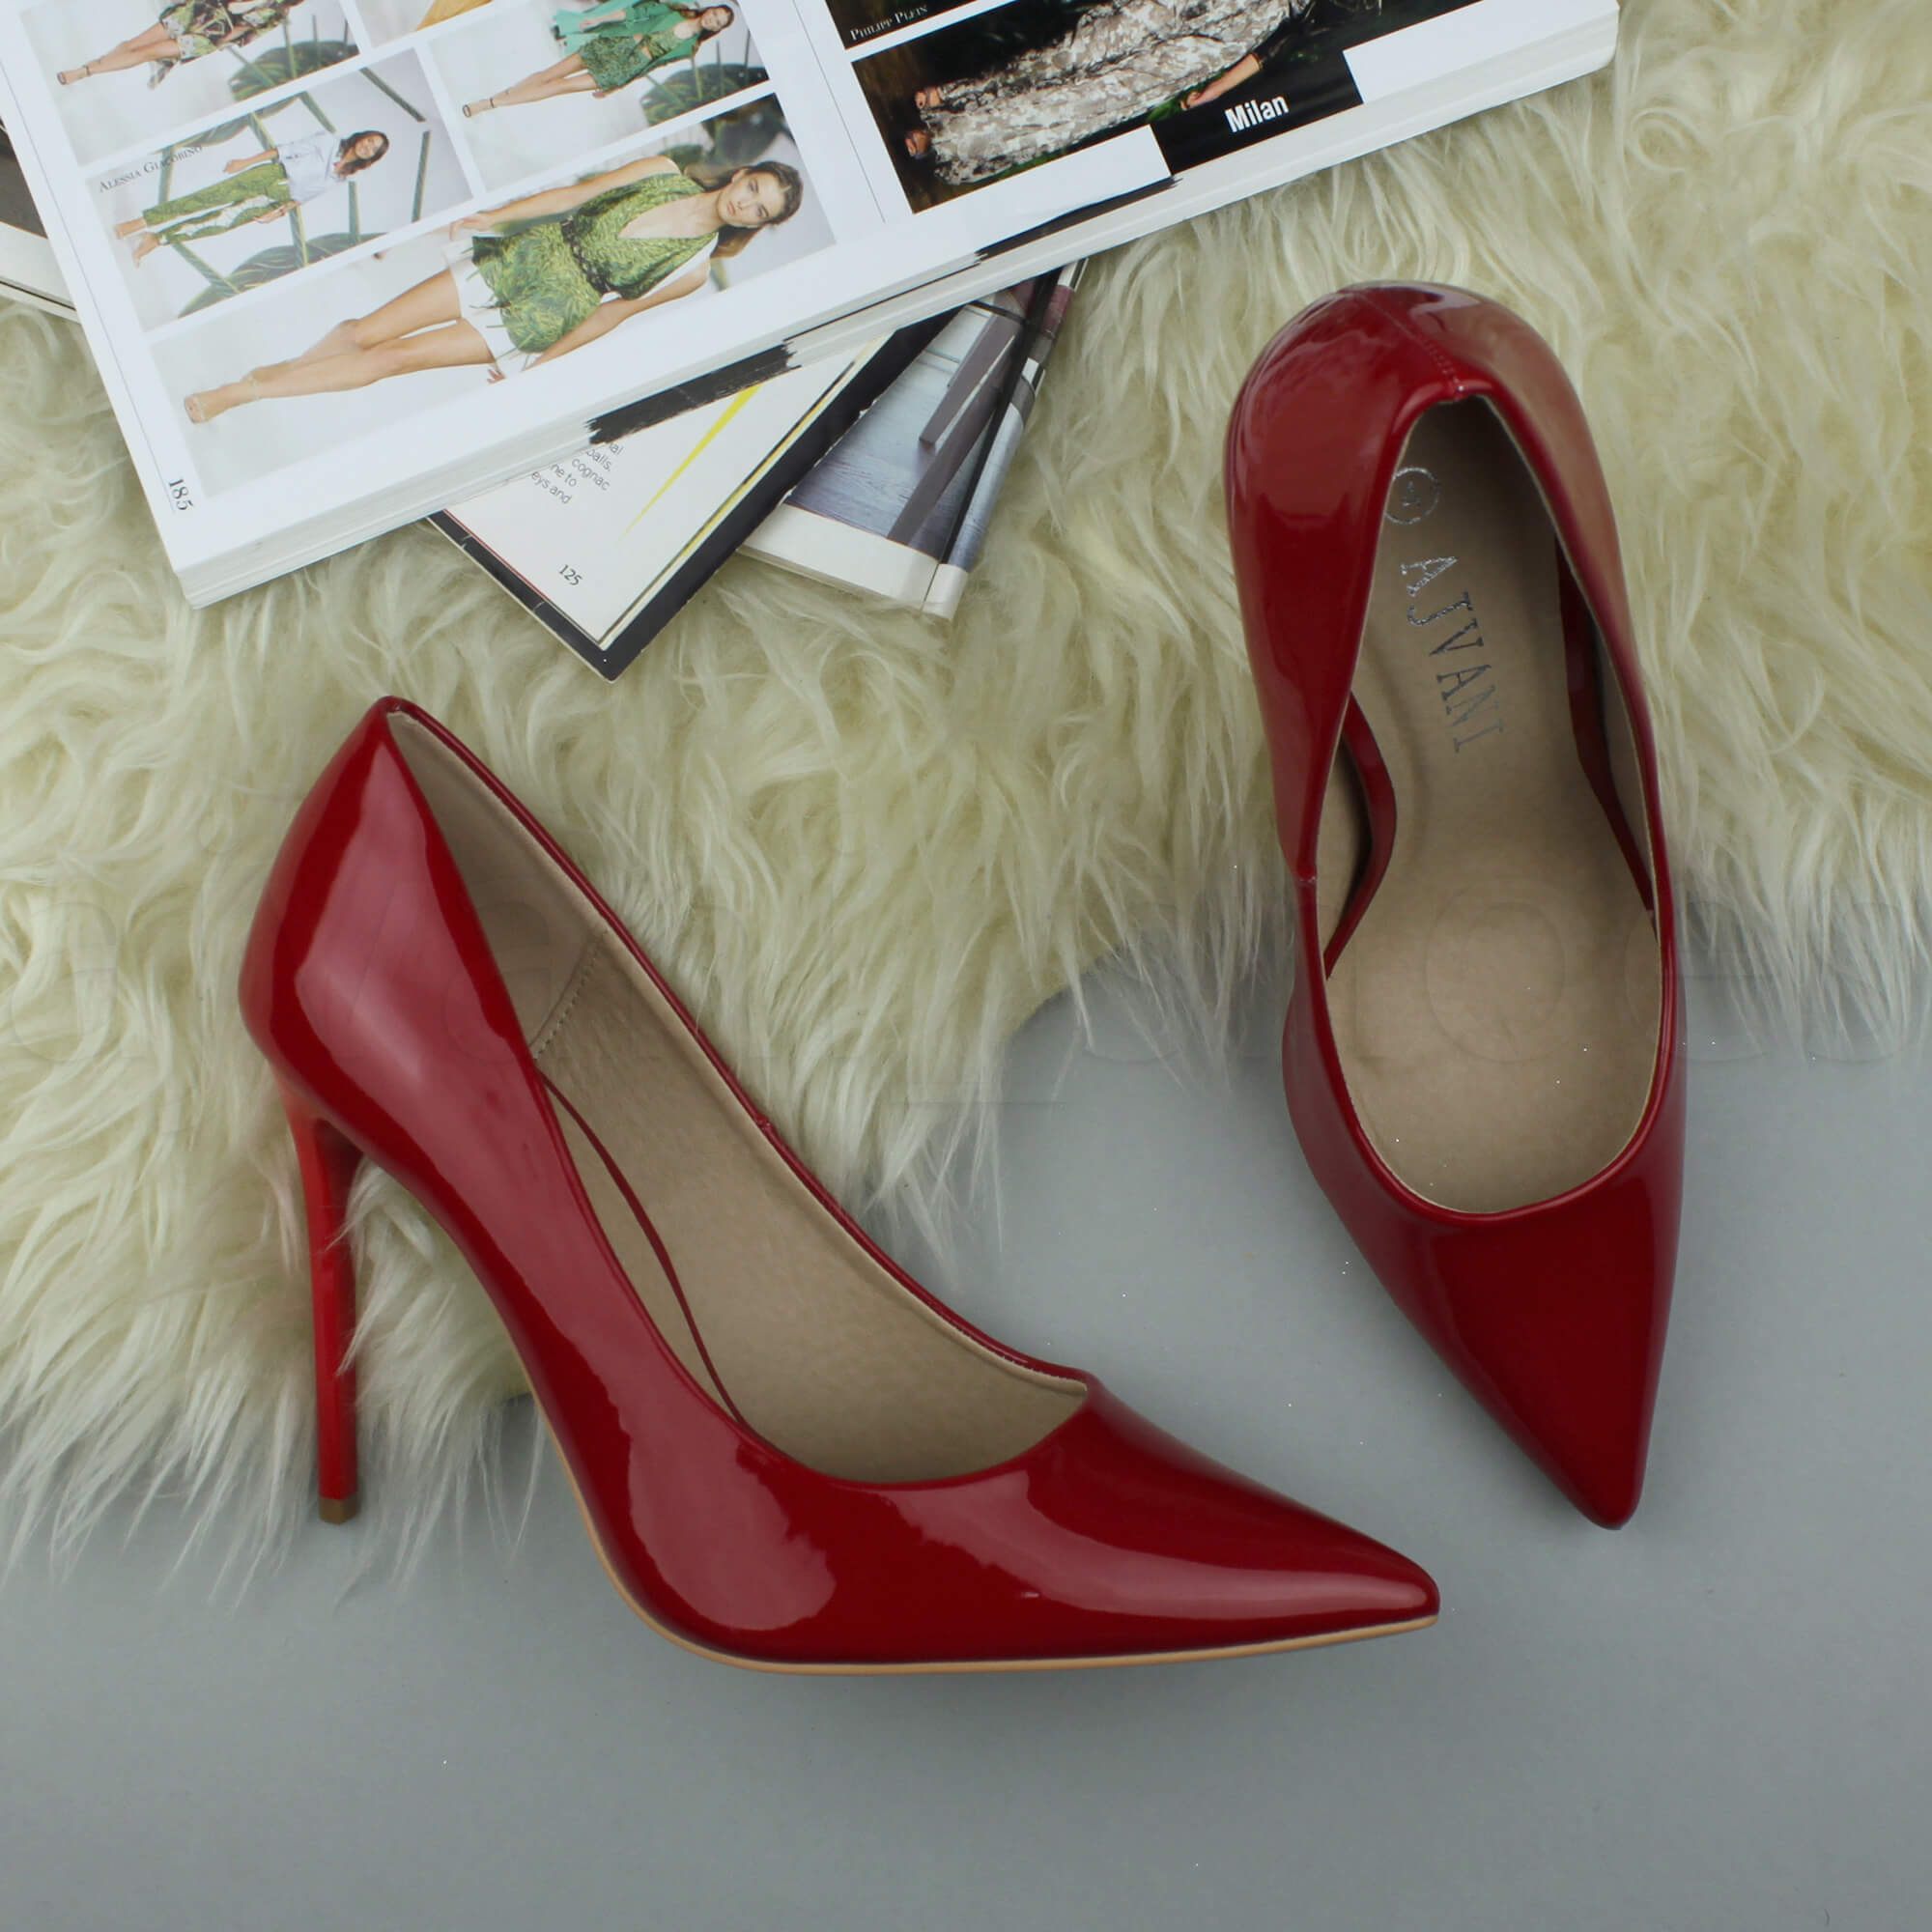 WOMENS-LADIES-HIGH-HEEL-POINTED-CONTRAST-COURT-SMART-PARTY-WORK-SHOES-PUMPS-SIZE thumbnail 163